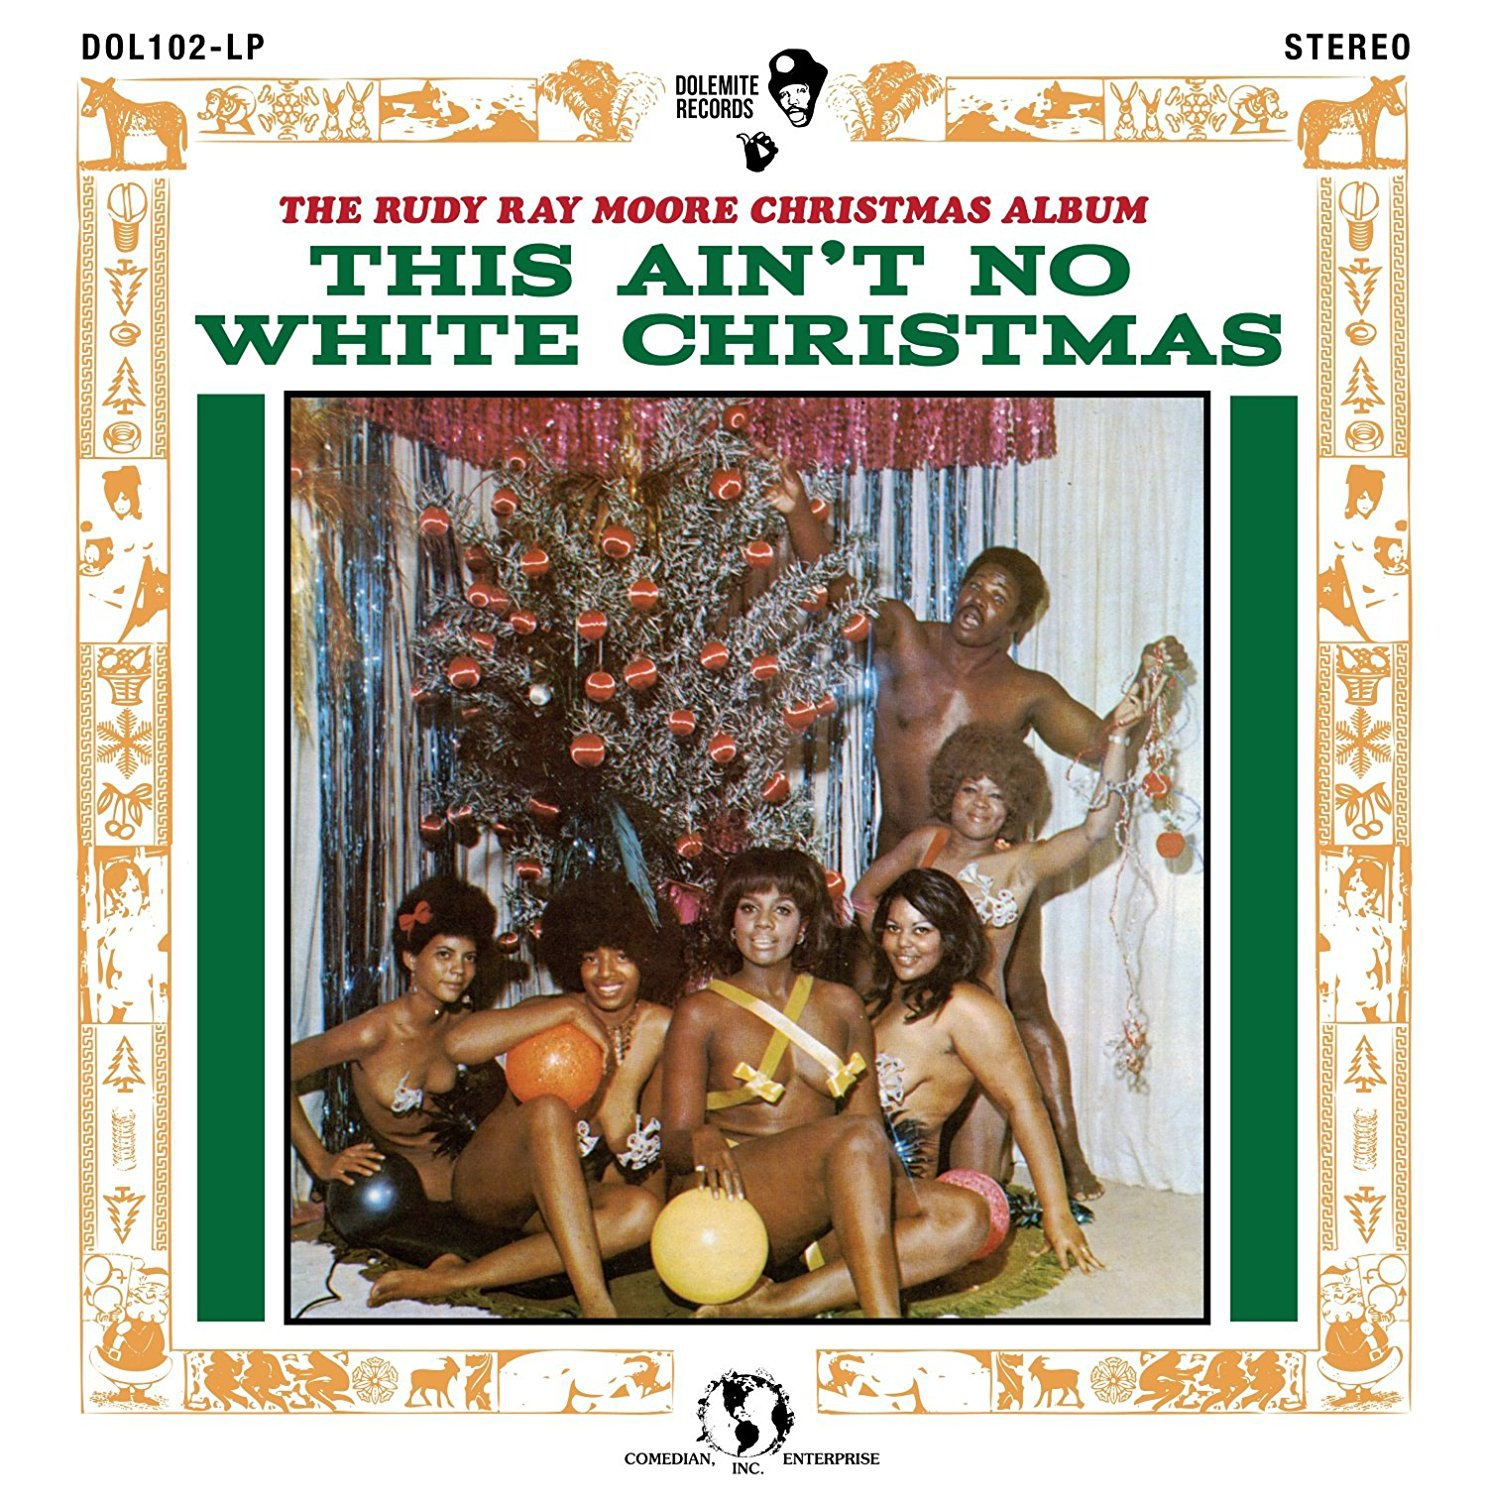 This Ain't No White Christmas by DOLEMITE RECORDS